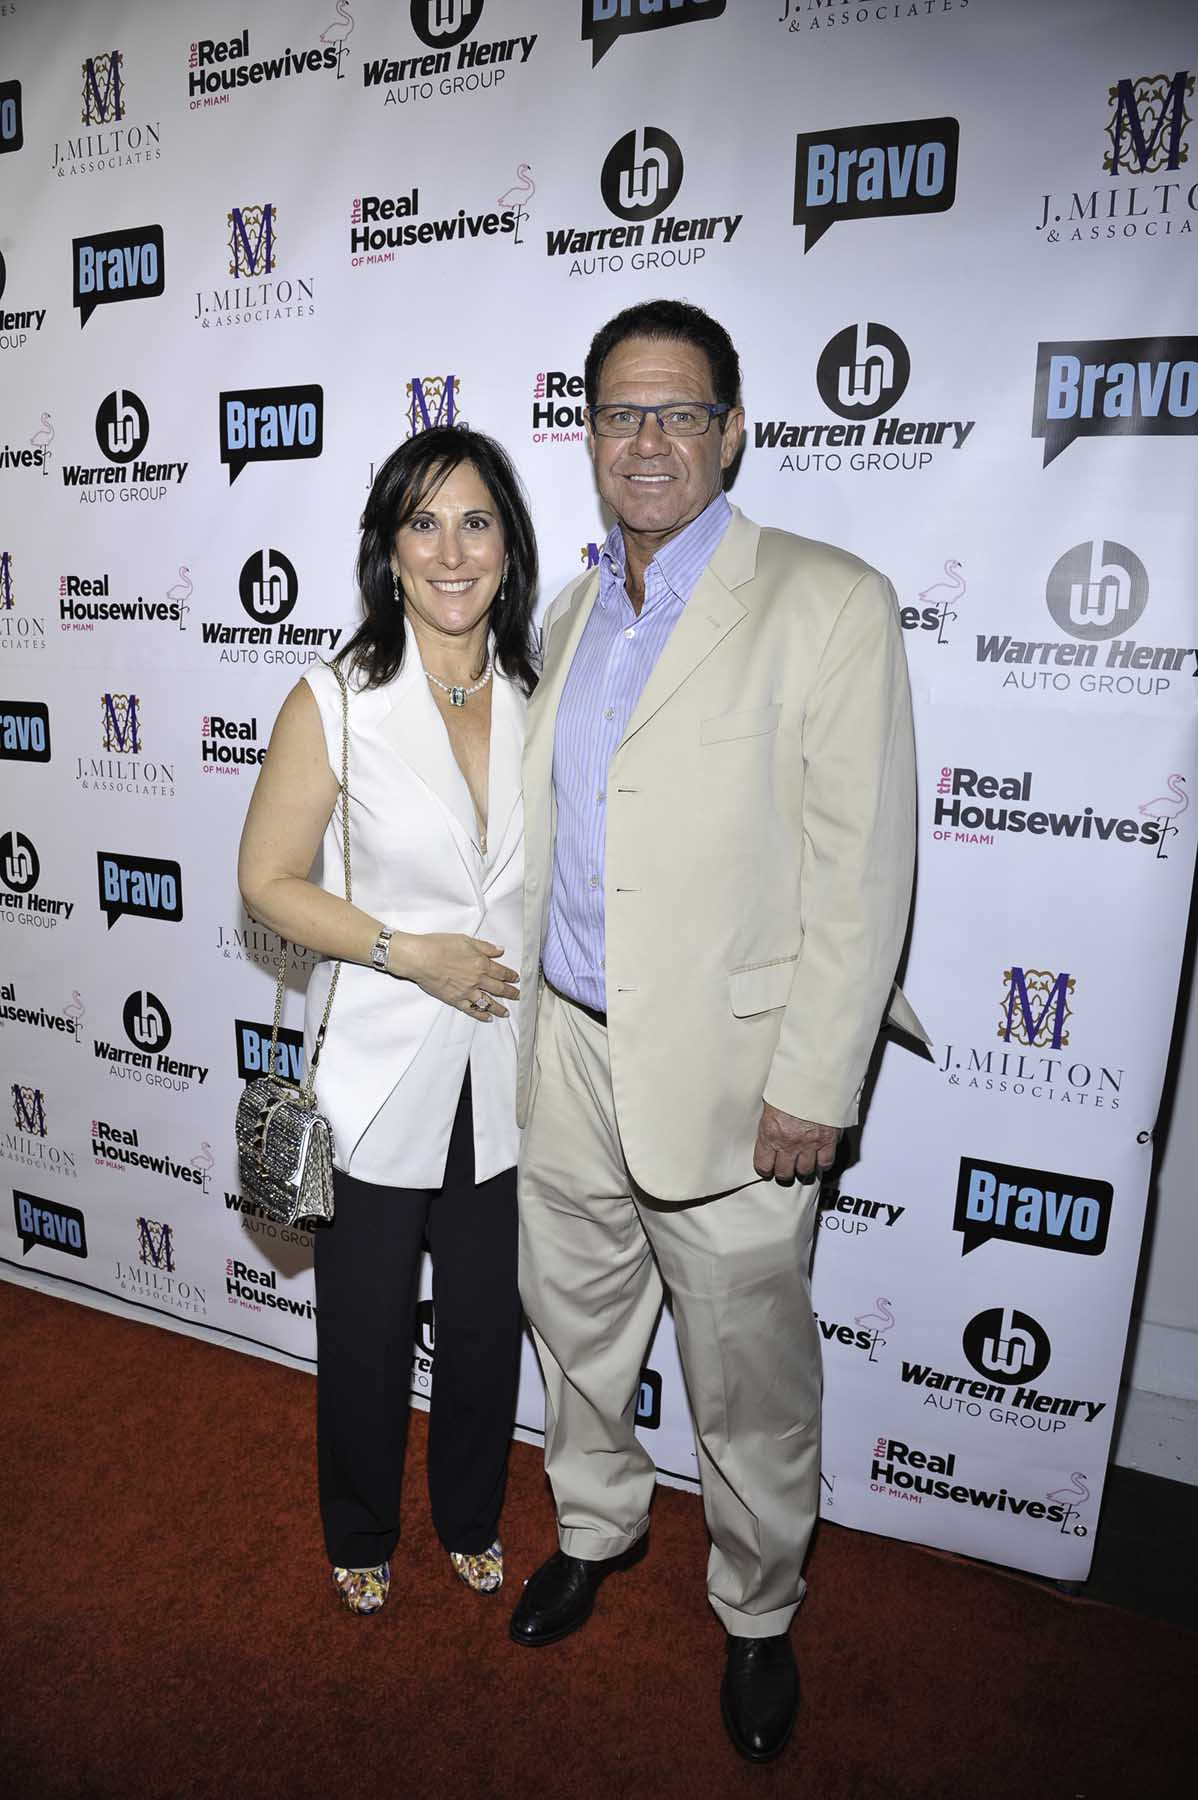 Vicki Miller and Warren Henry Zinn, President and CEO of Warren Henry Auto Group